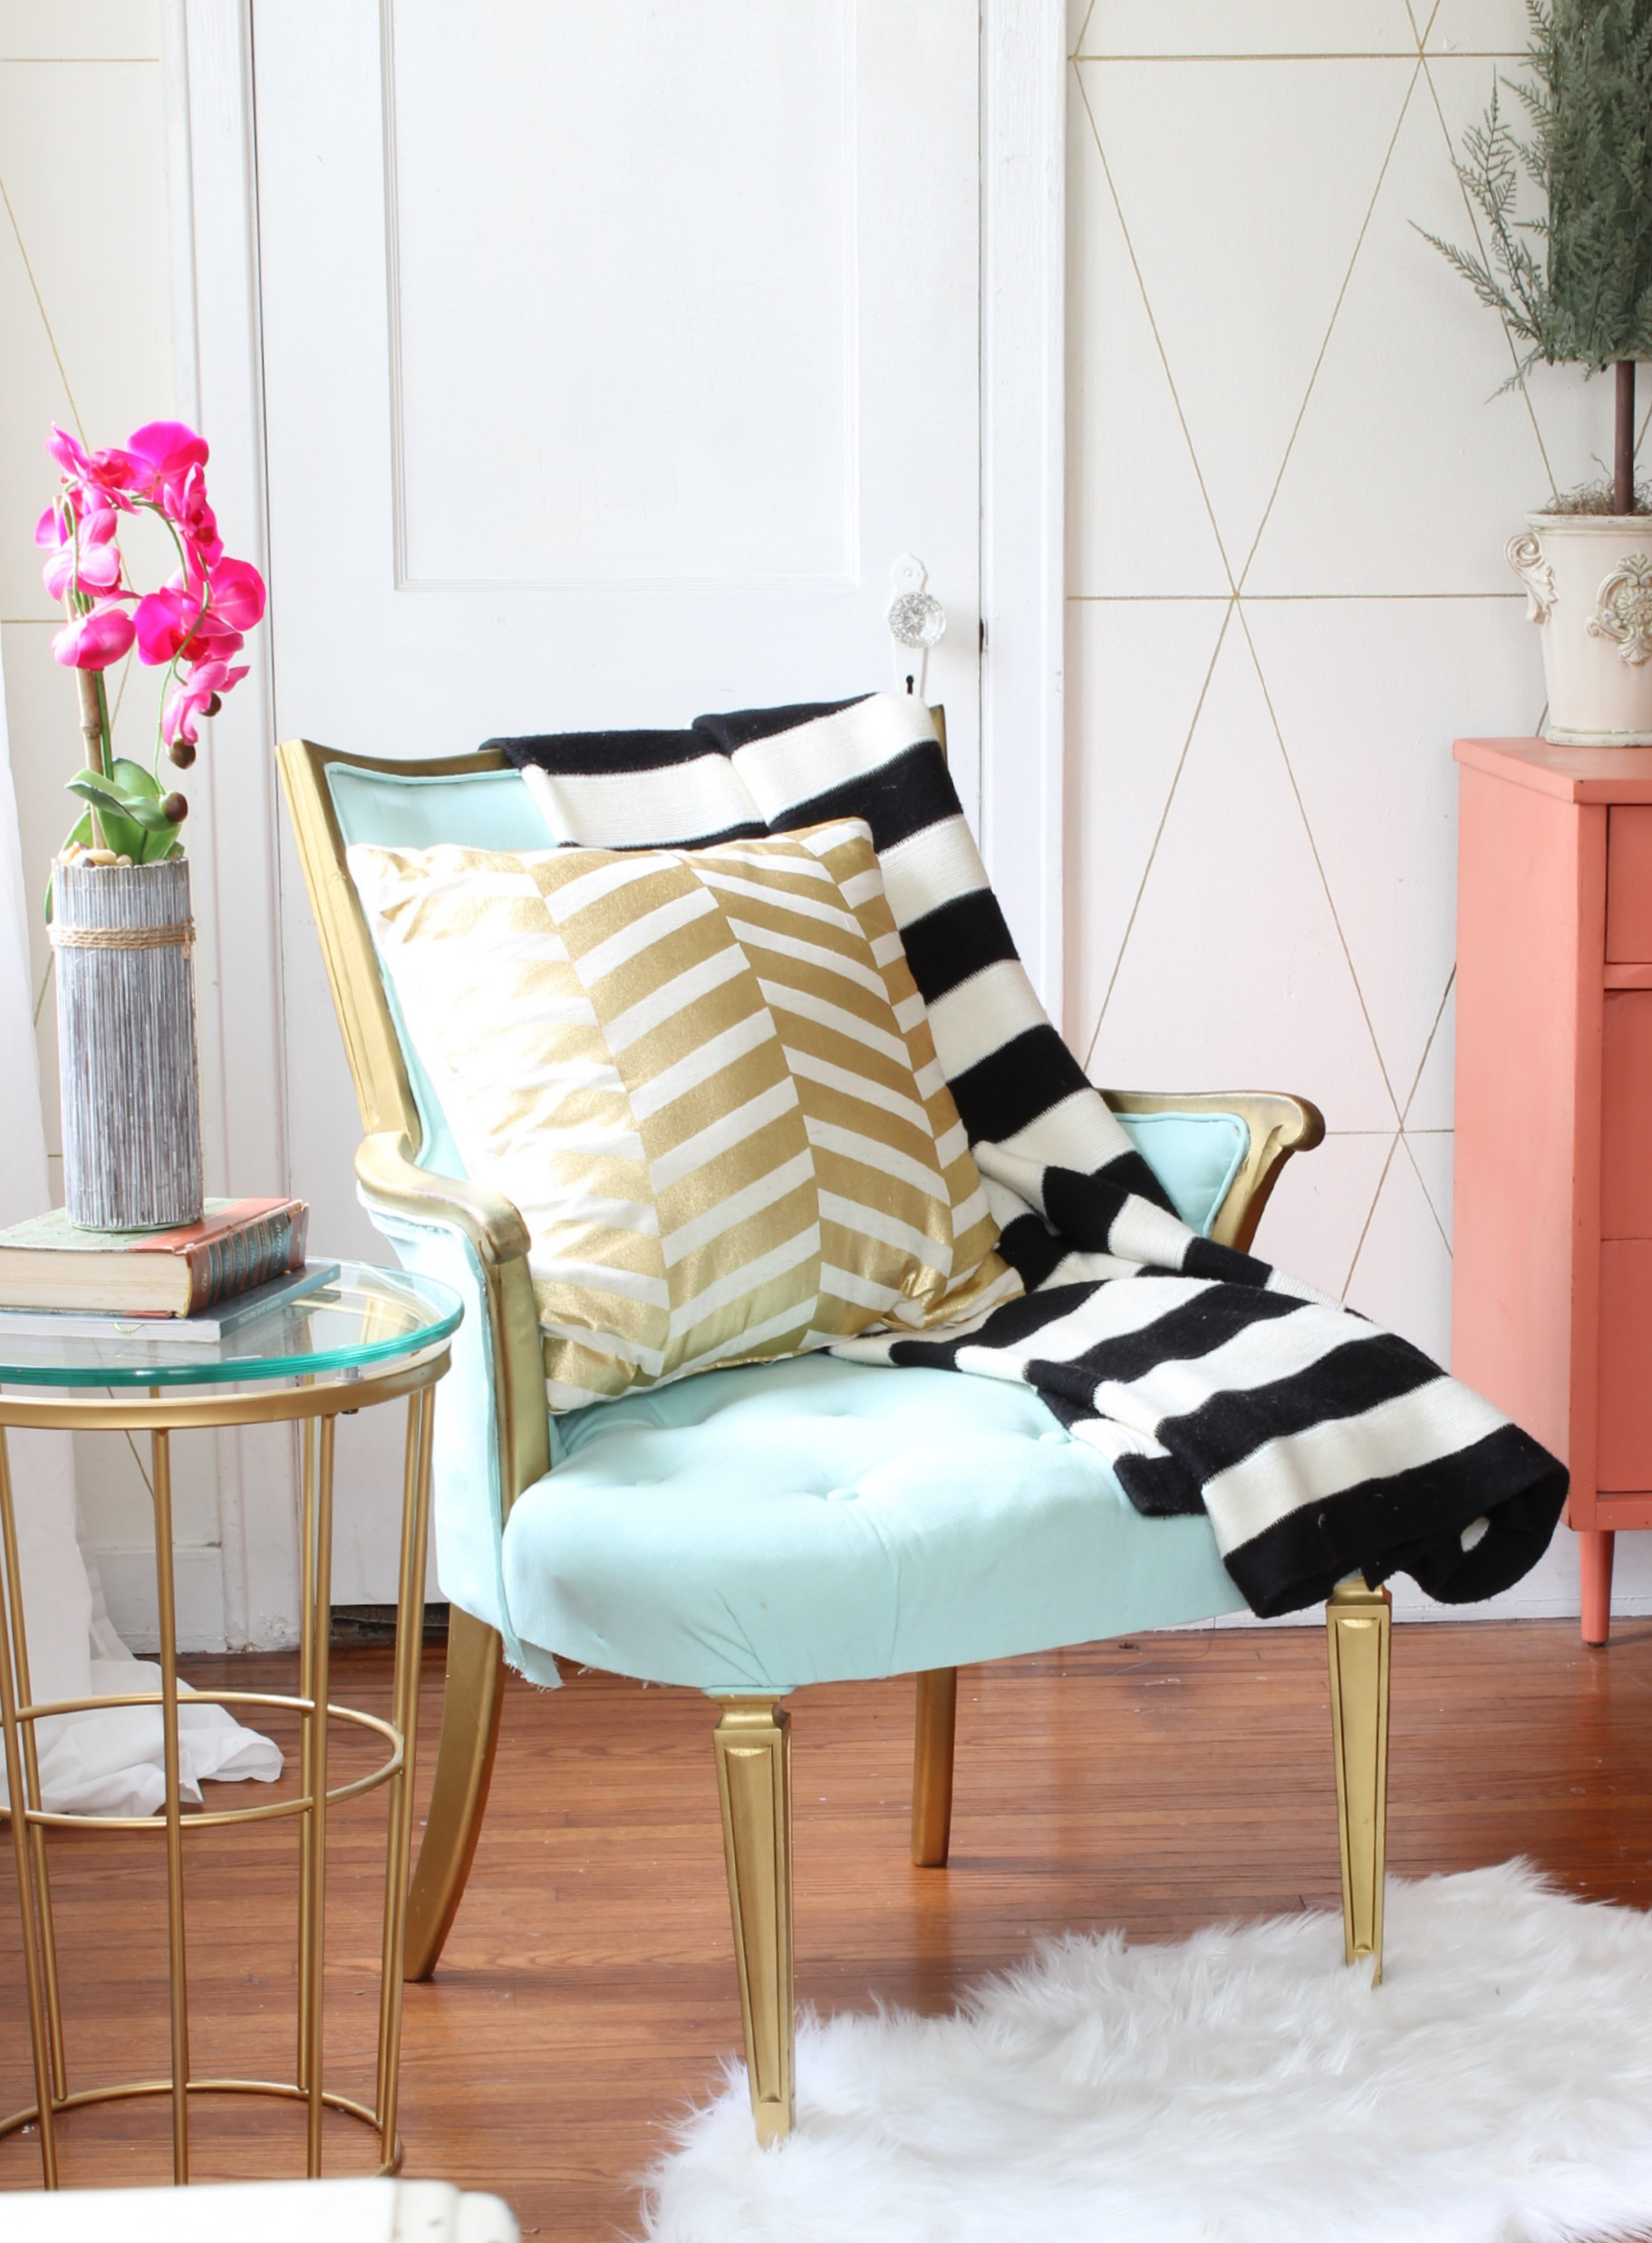 Living Room Makeover With Jewel Tones, Black U0026 White And Gold Accents